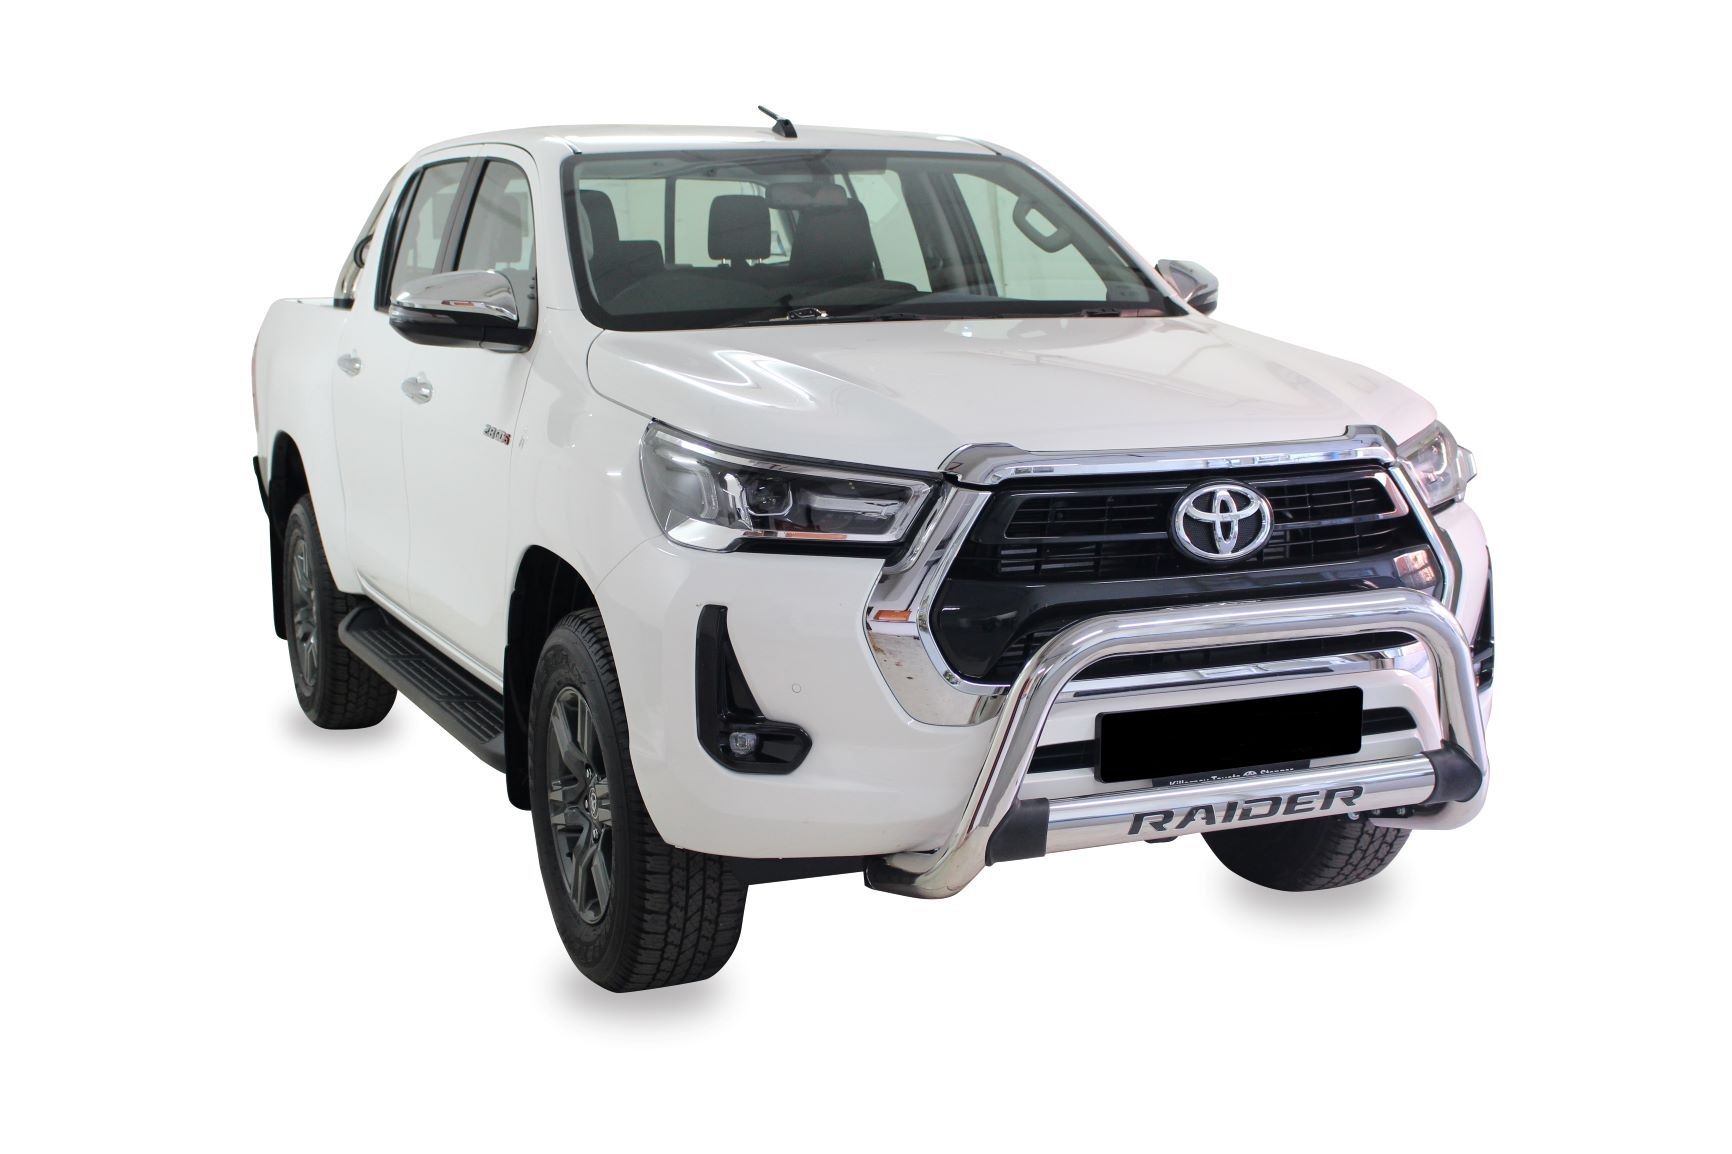 NEW HILUX FACELIFT RANGE (Fits GD6 Revo & New Facelift) Stainless Nudge Bar